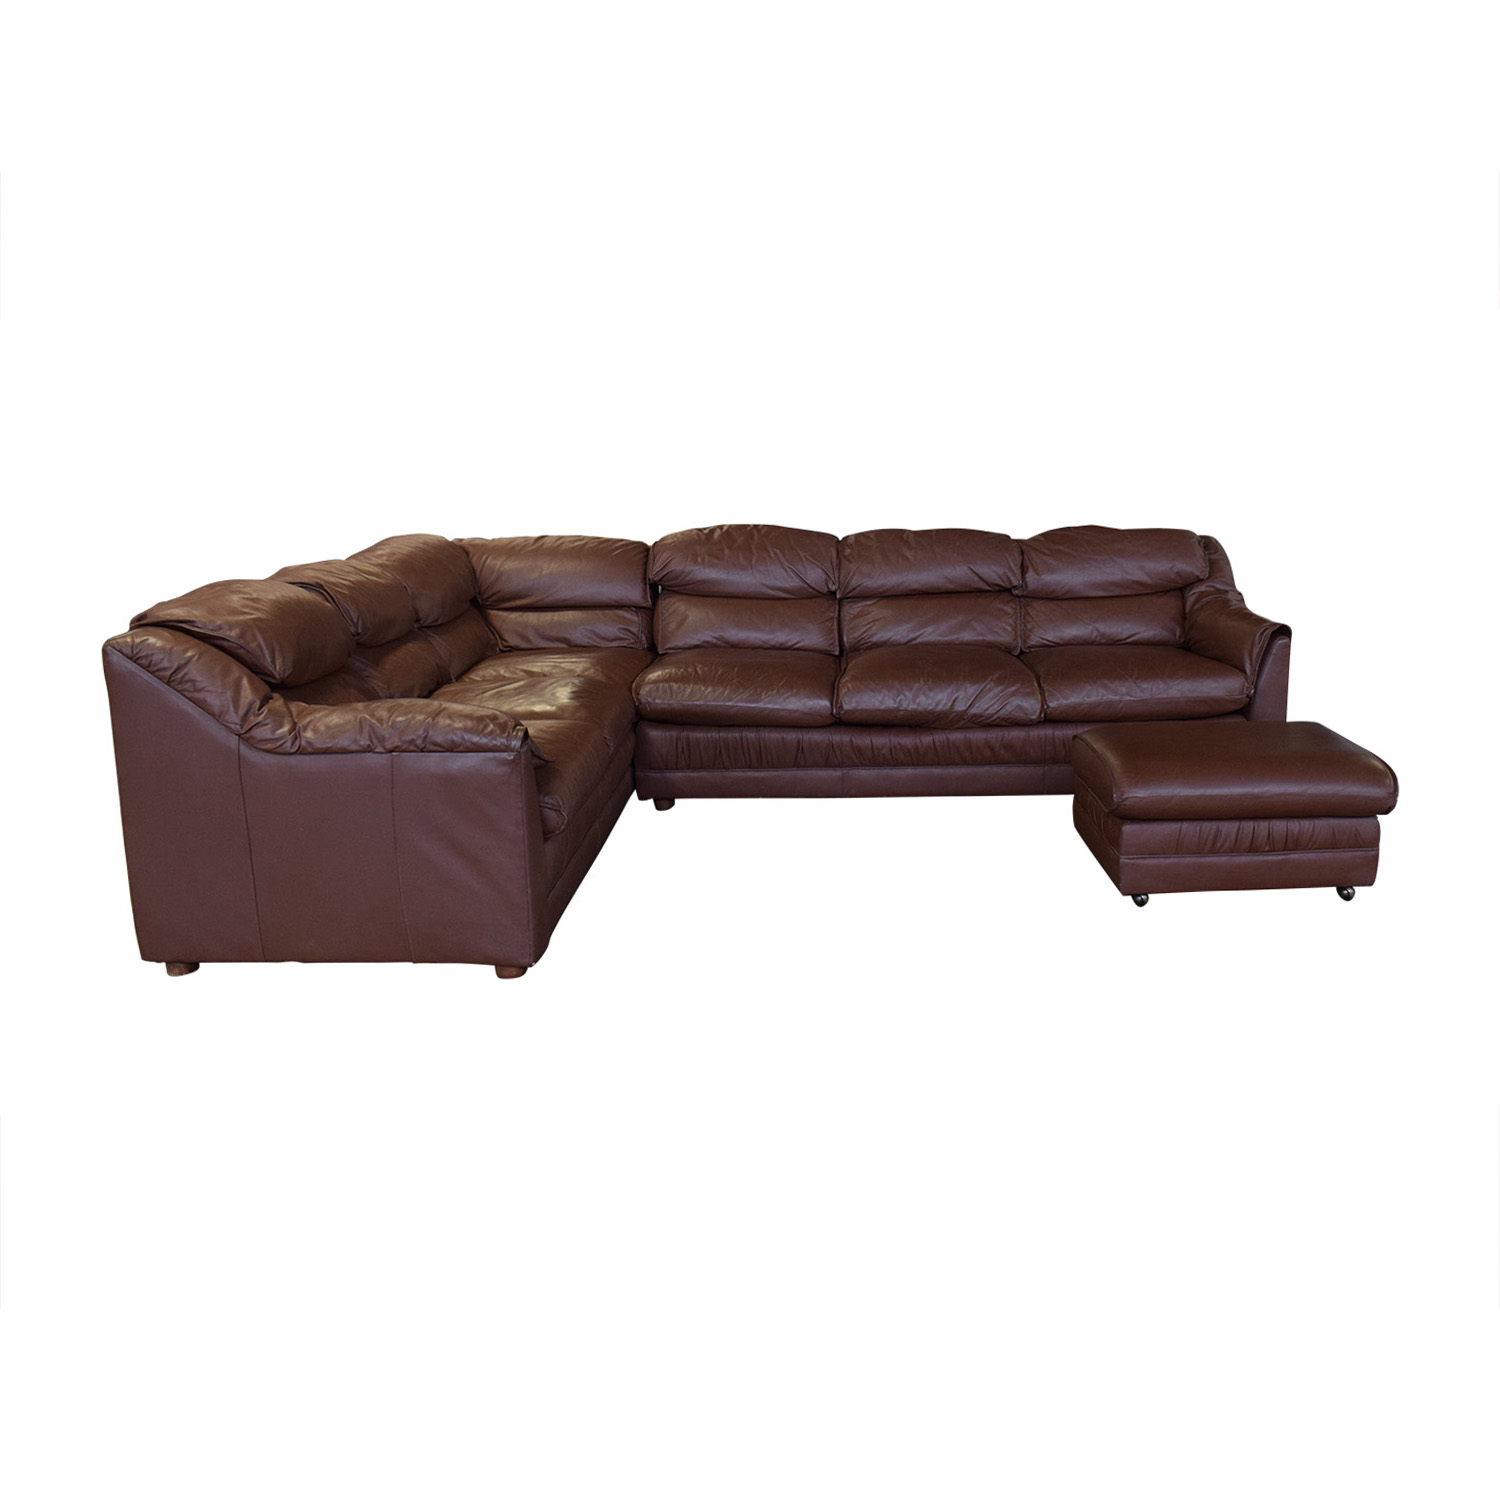 Emerson Leather Sectional And Ottoman sale